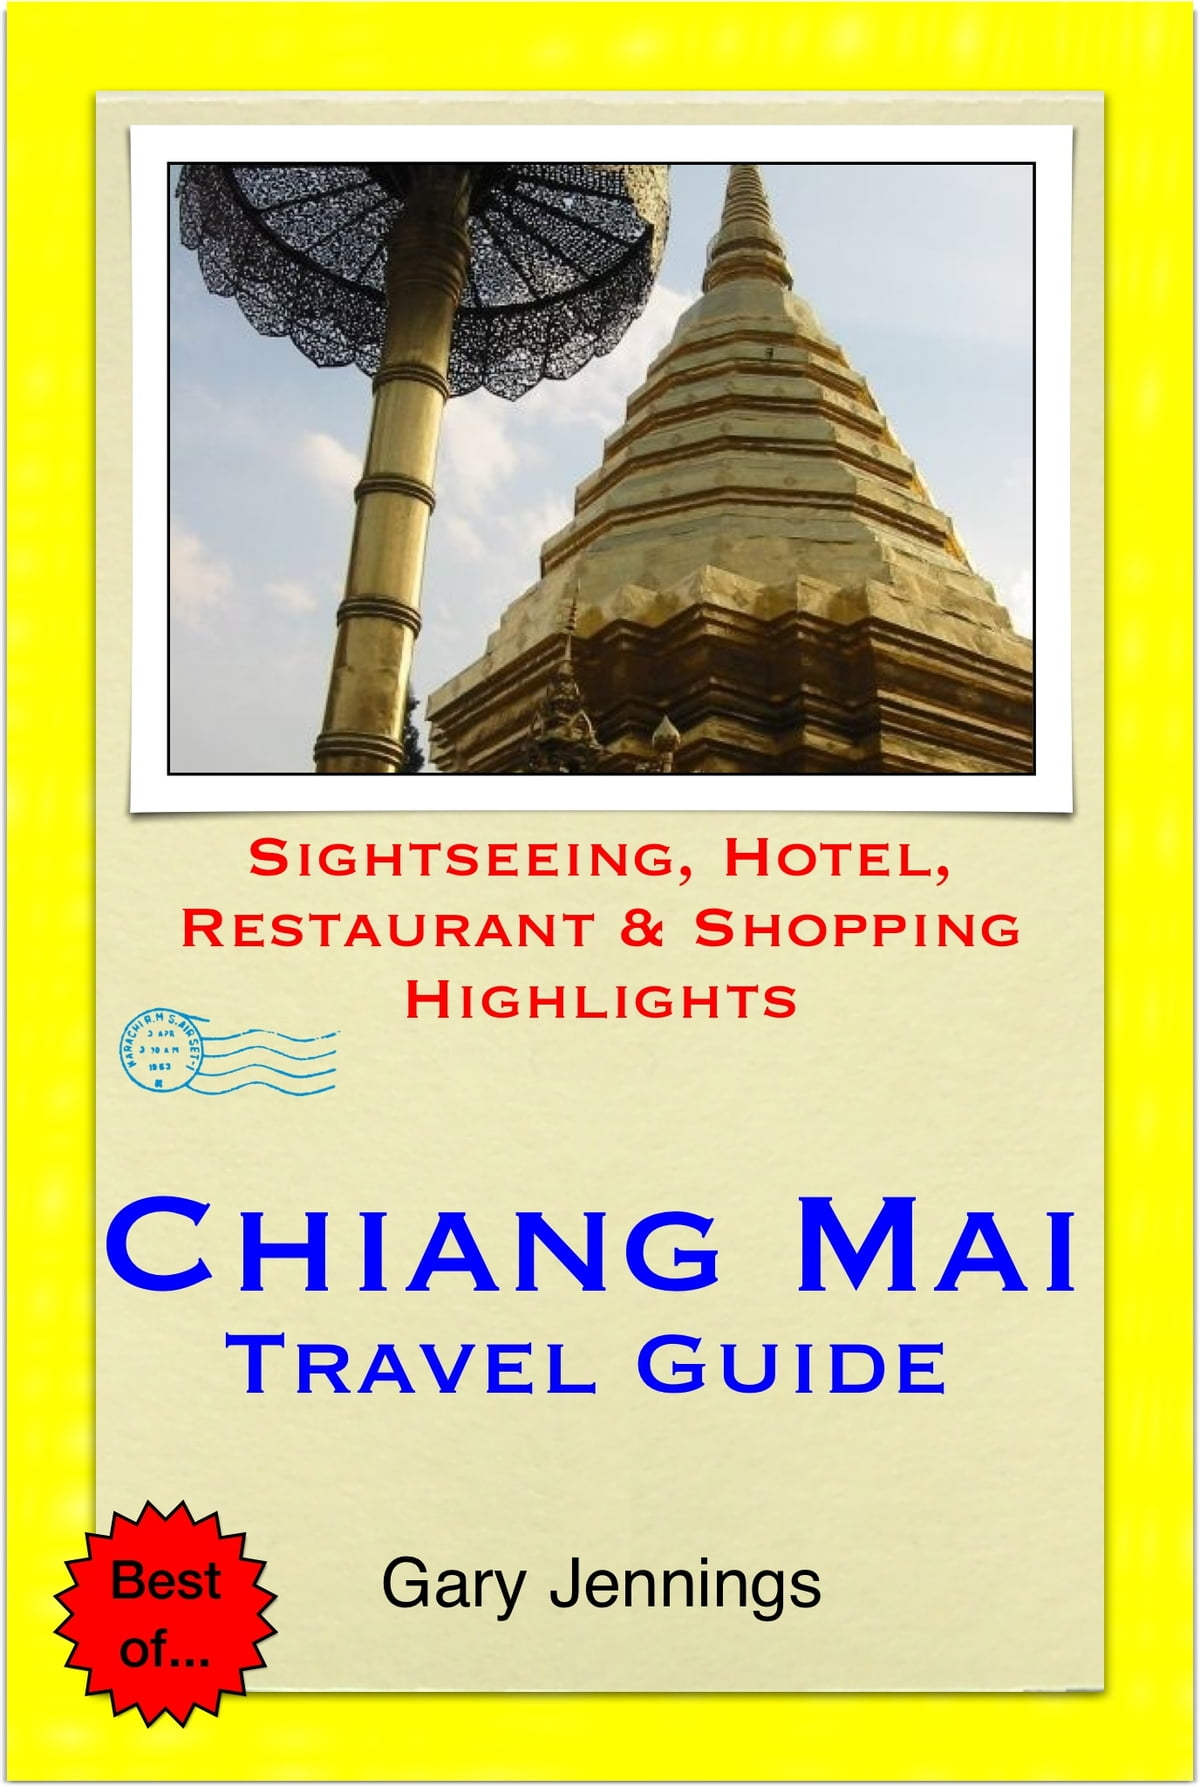 Chiang mai, thailand travel guide sightseeing, hotel, restaurant.